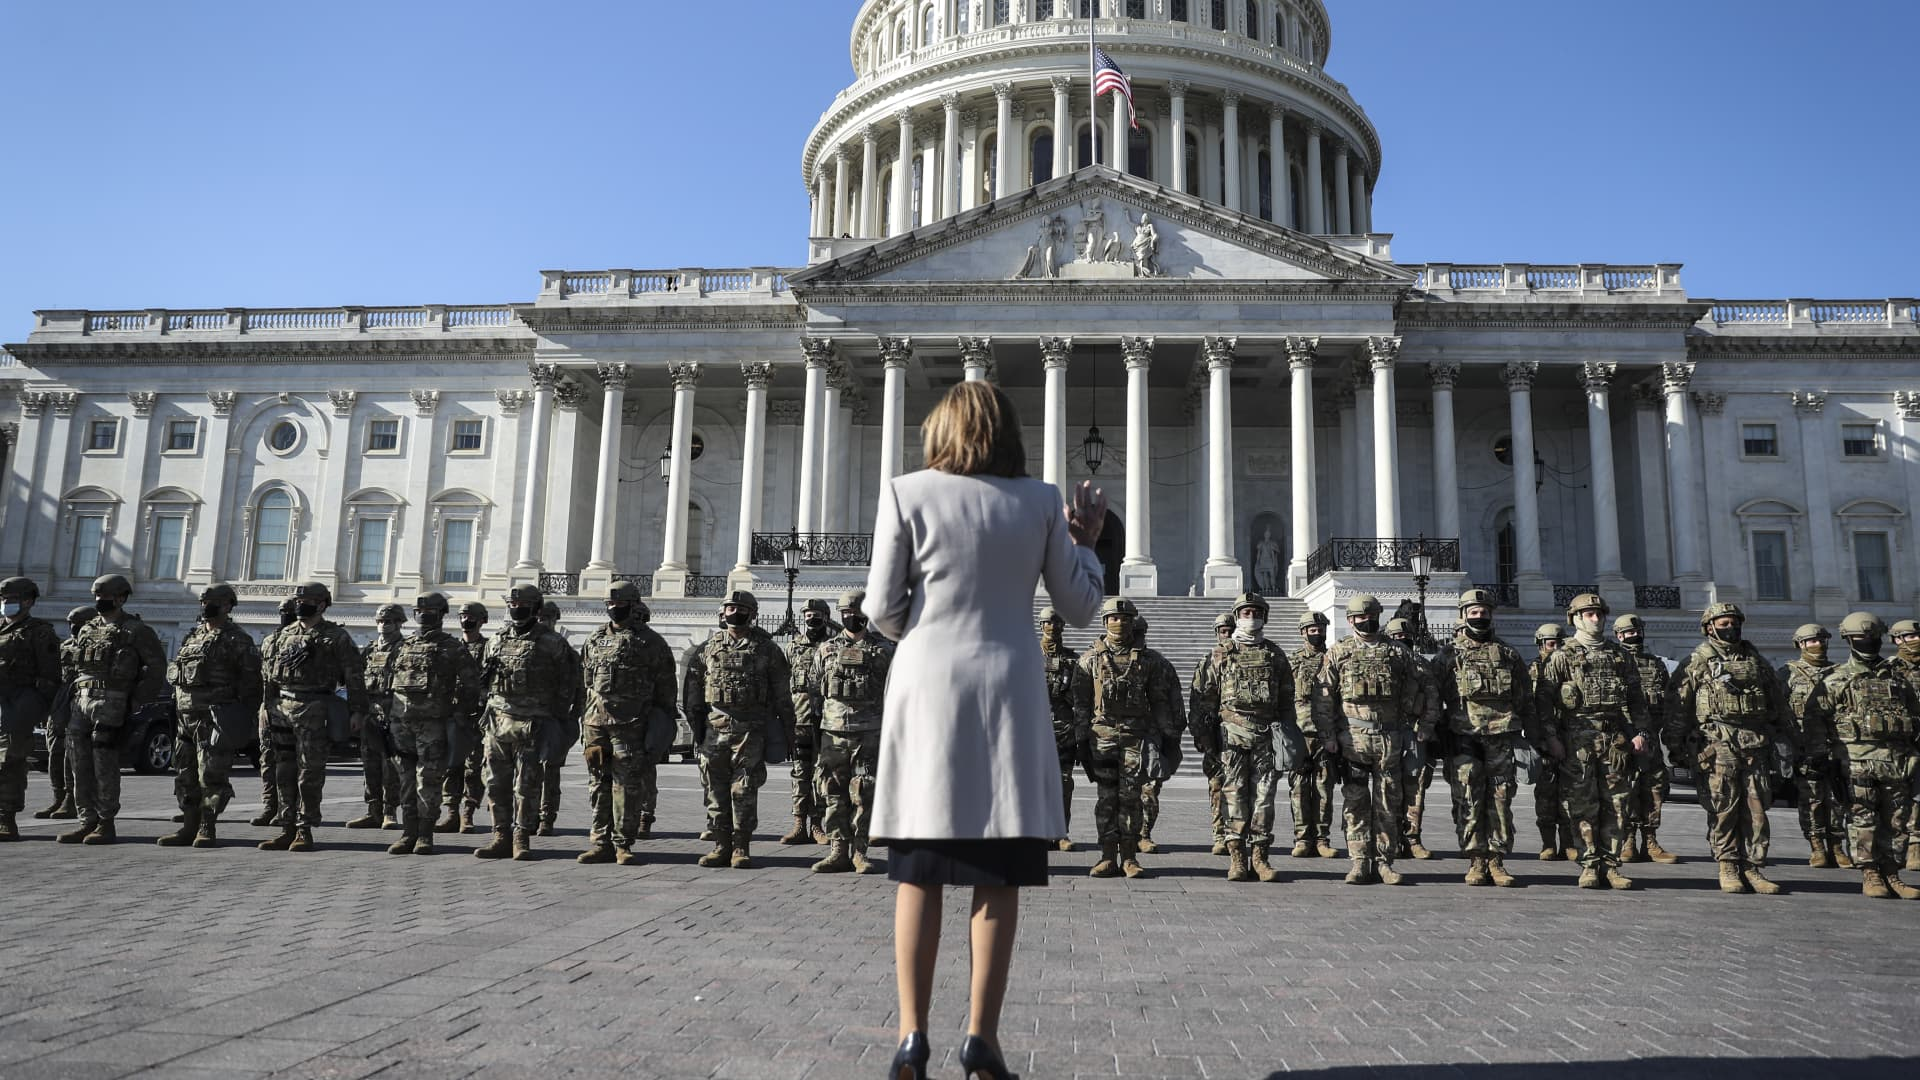 U.S. House Speaker Nancy Pelosi, D-Calif., stands in front of a National Guard troop as she speaks, on the East Entrance of the US Capitol in Washington, DC, on January 13, 2021.